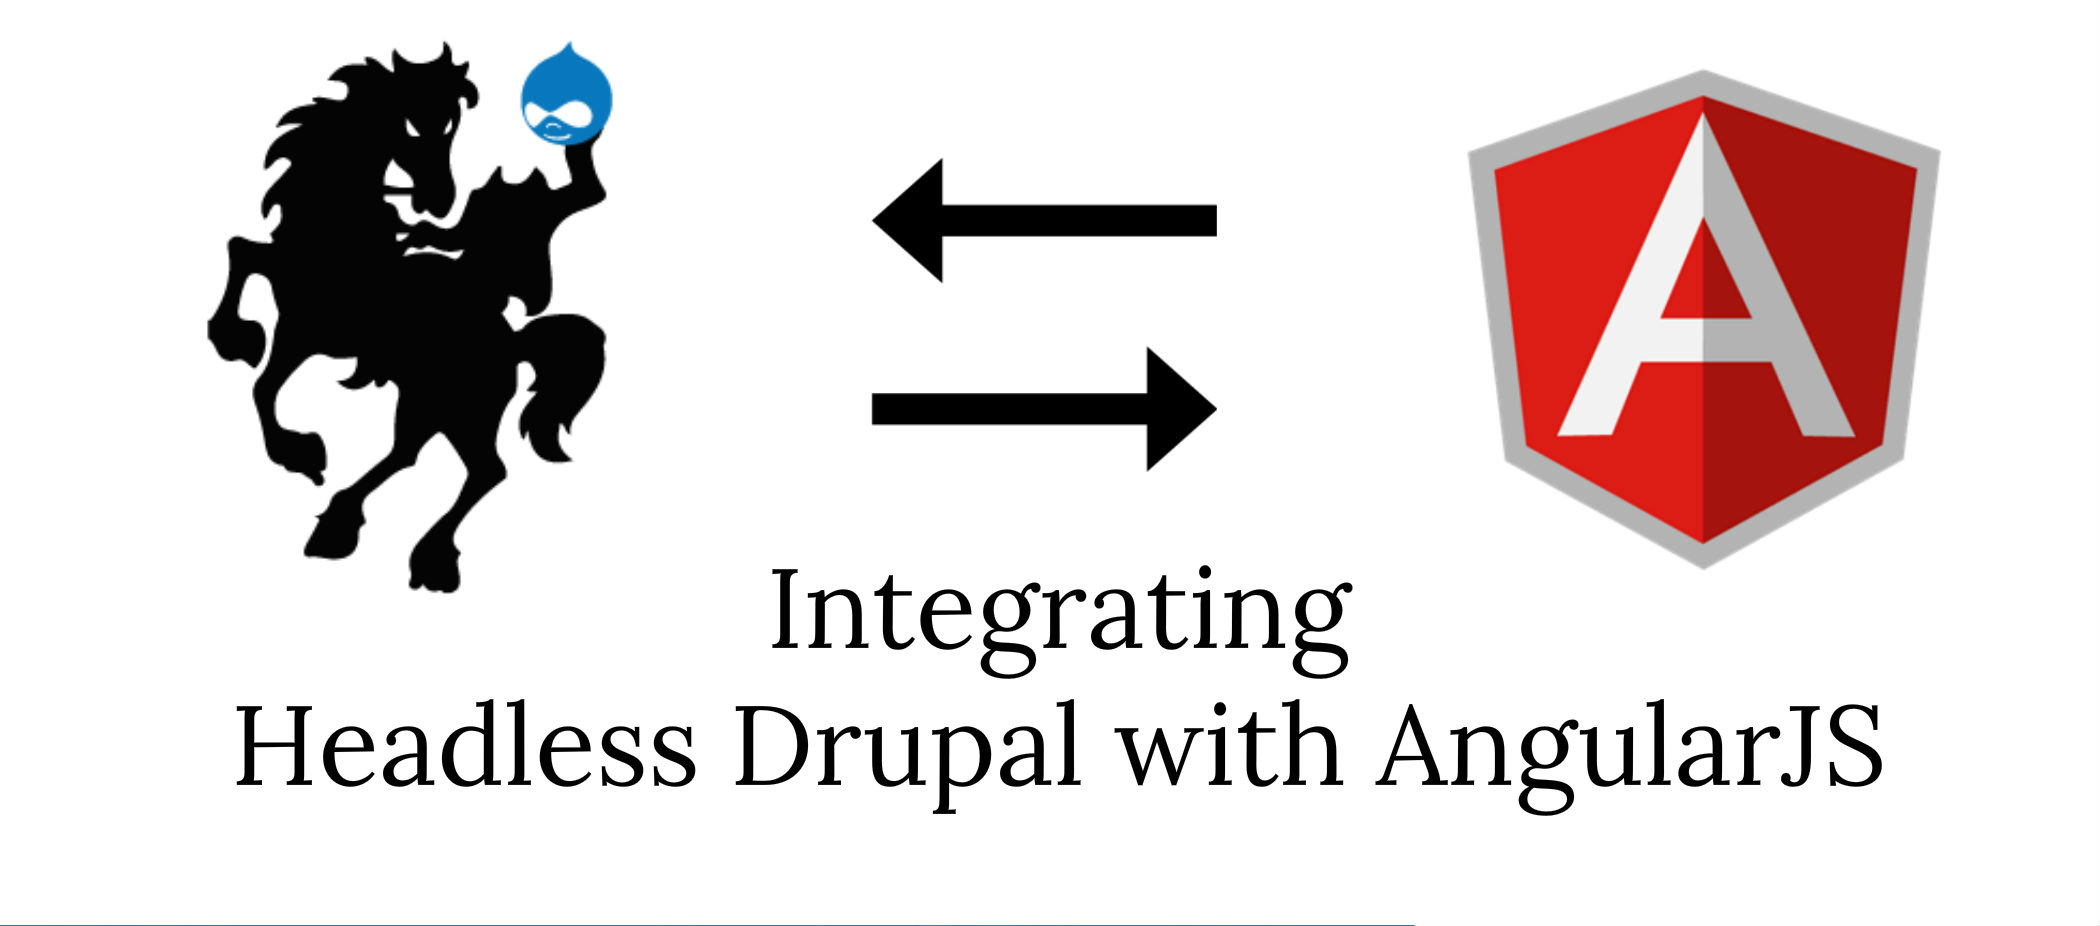 Integrating Headless Drupal with AngularJS | Valuebound